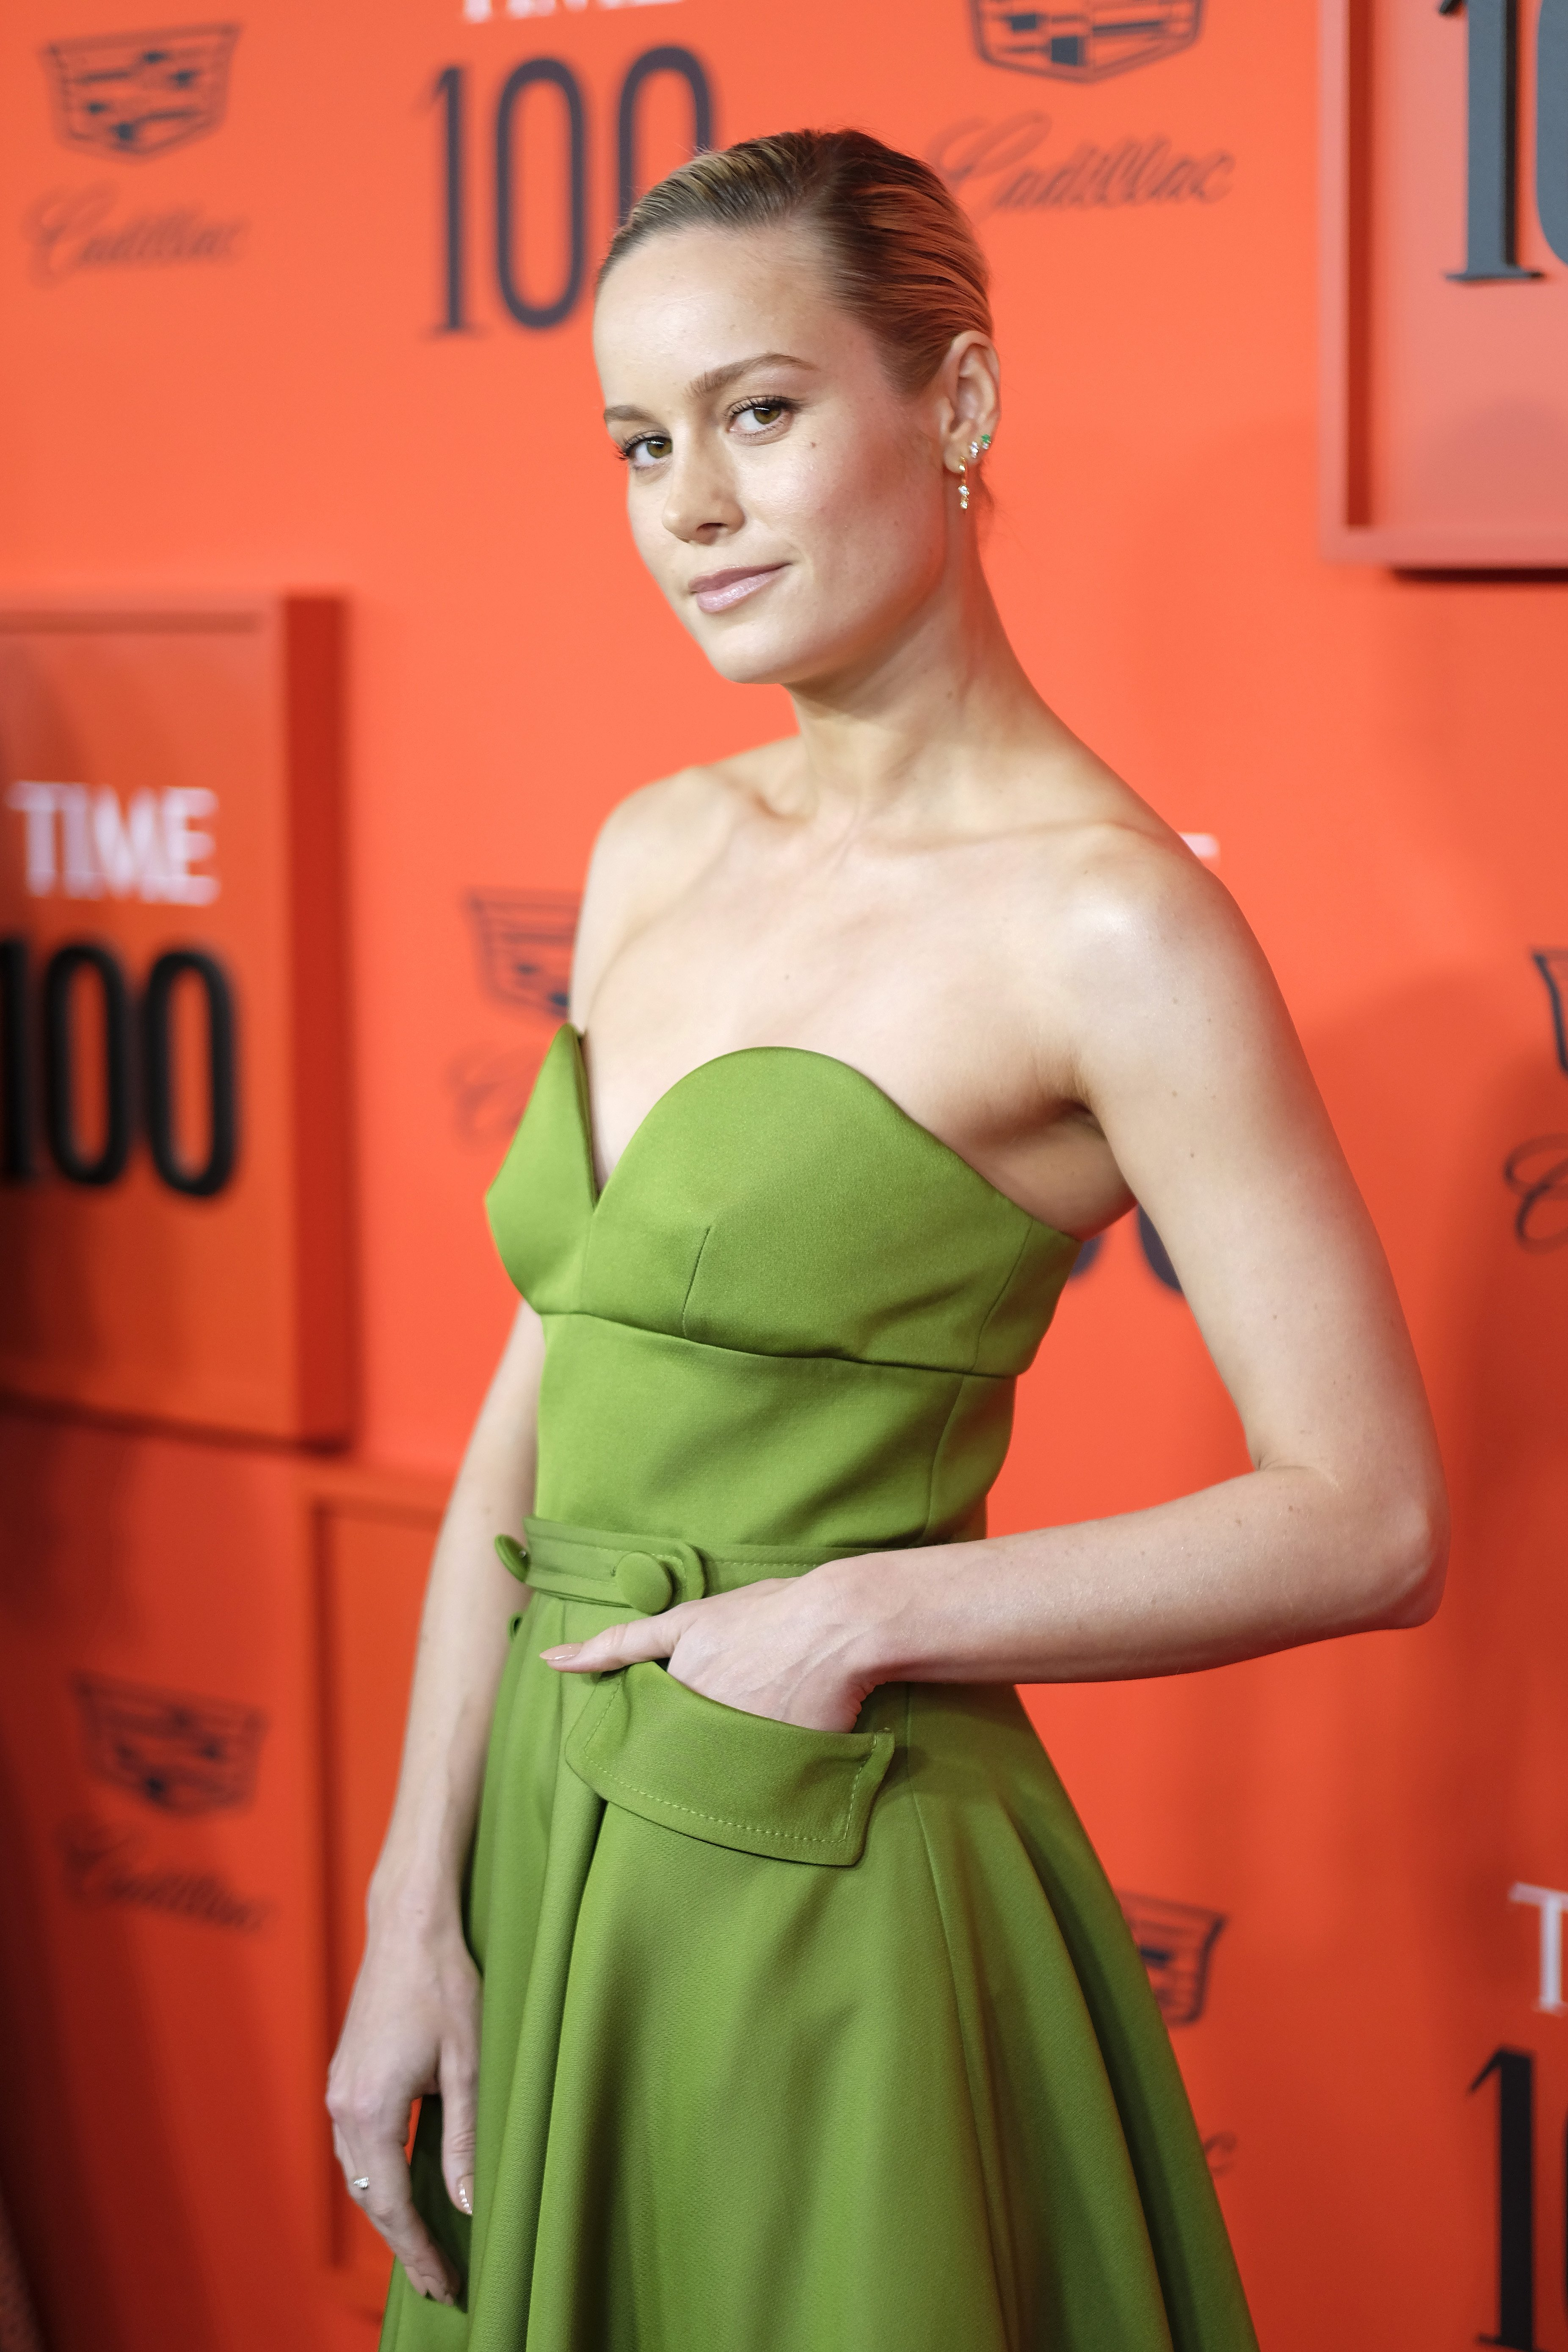 Brie Larson at the TIME 100 Gala Red Carpet on April 23, 2019 in New York City.   Photo: Getty Images